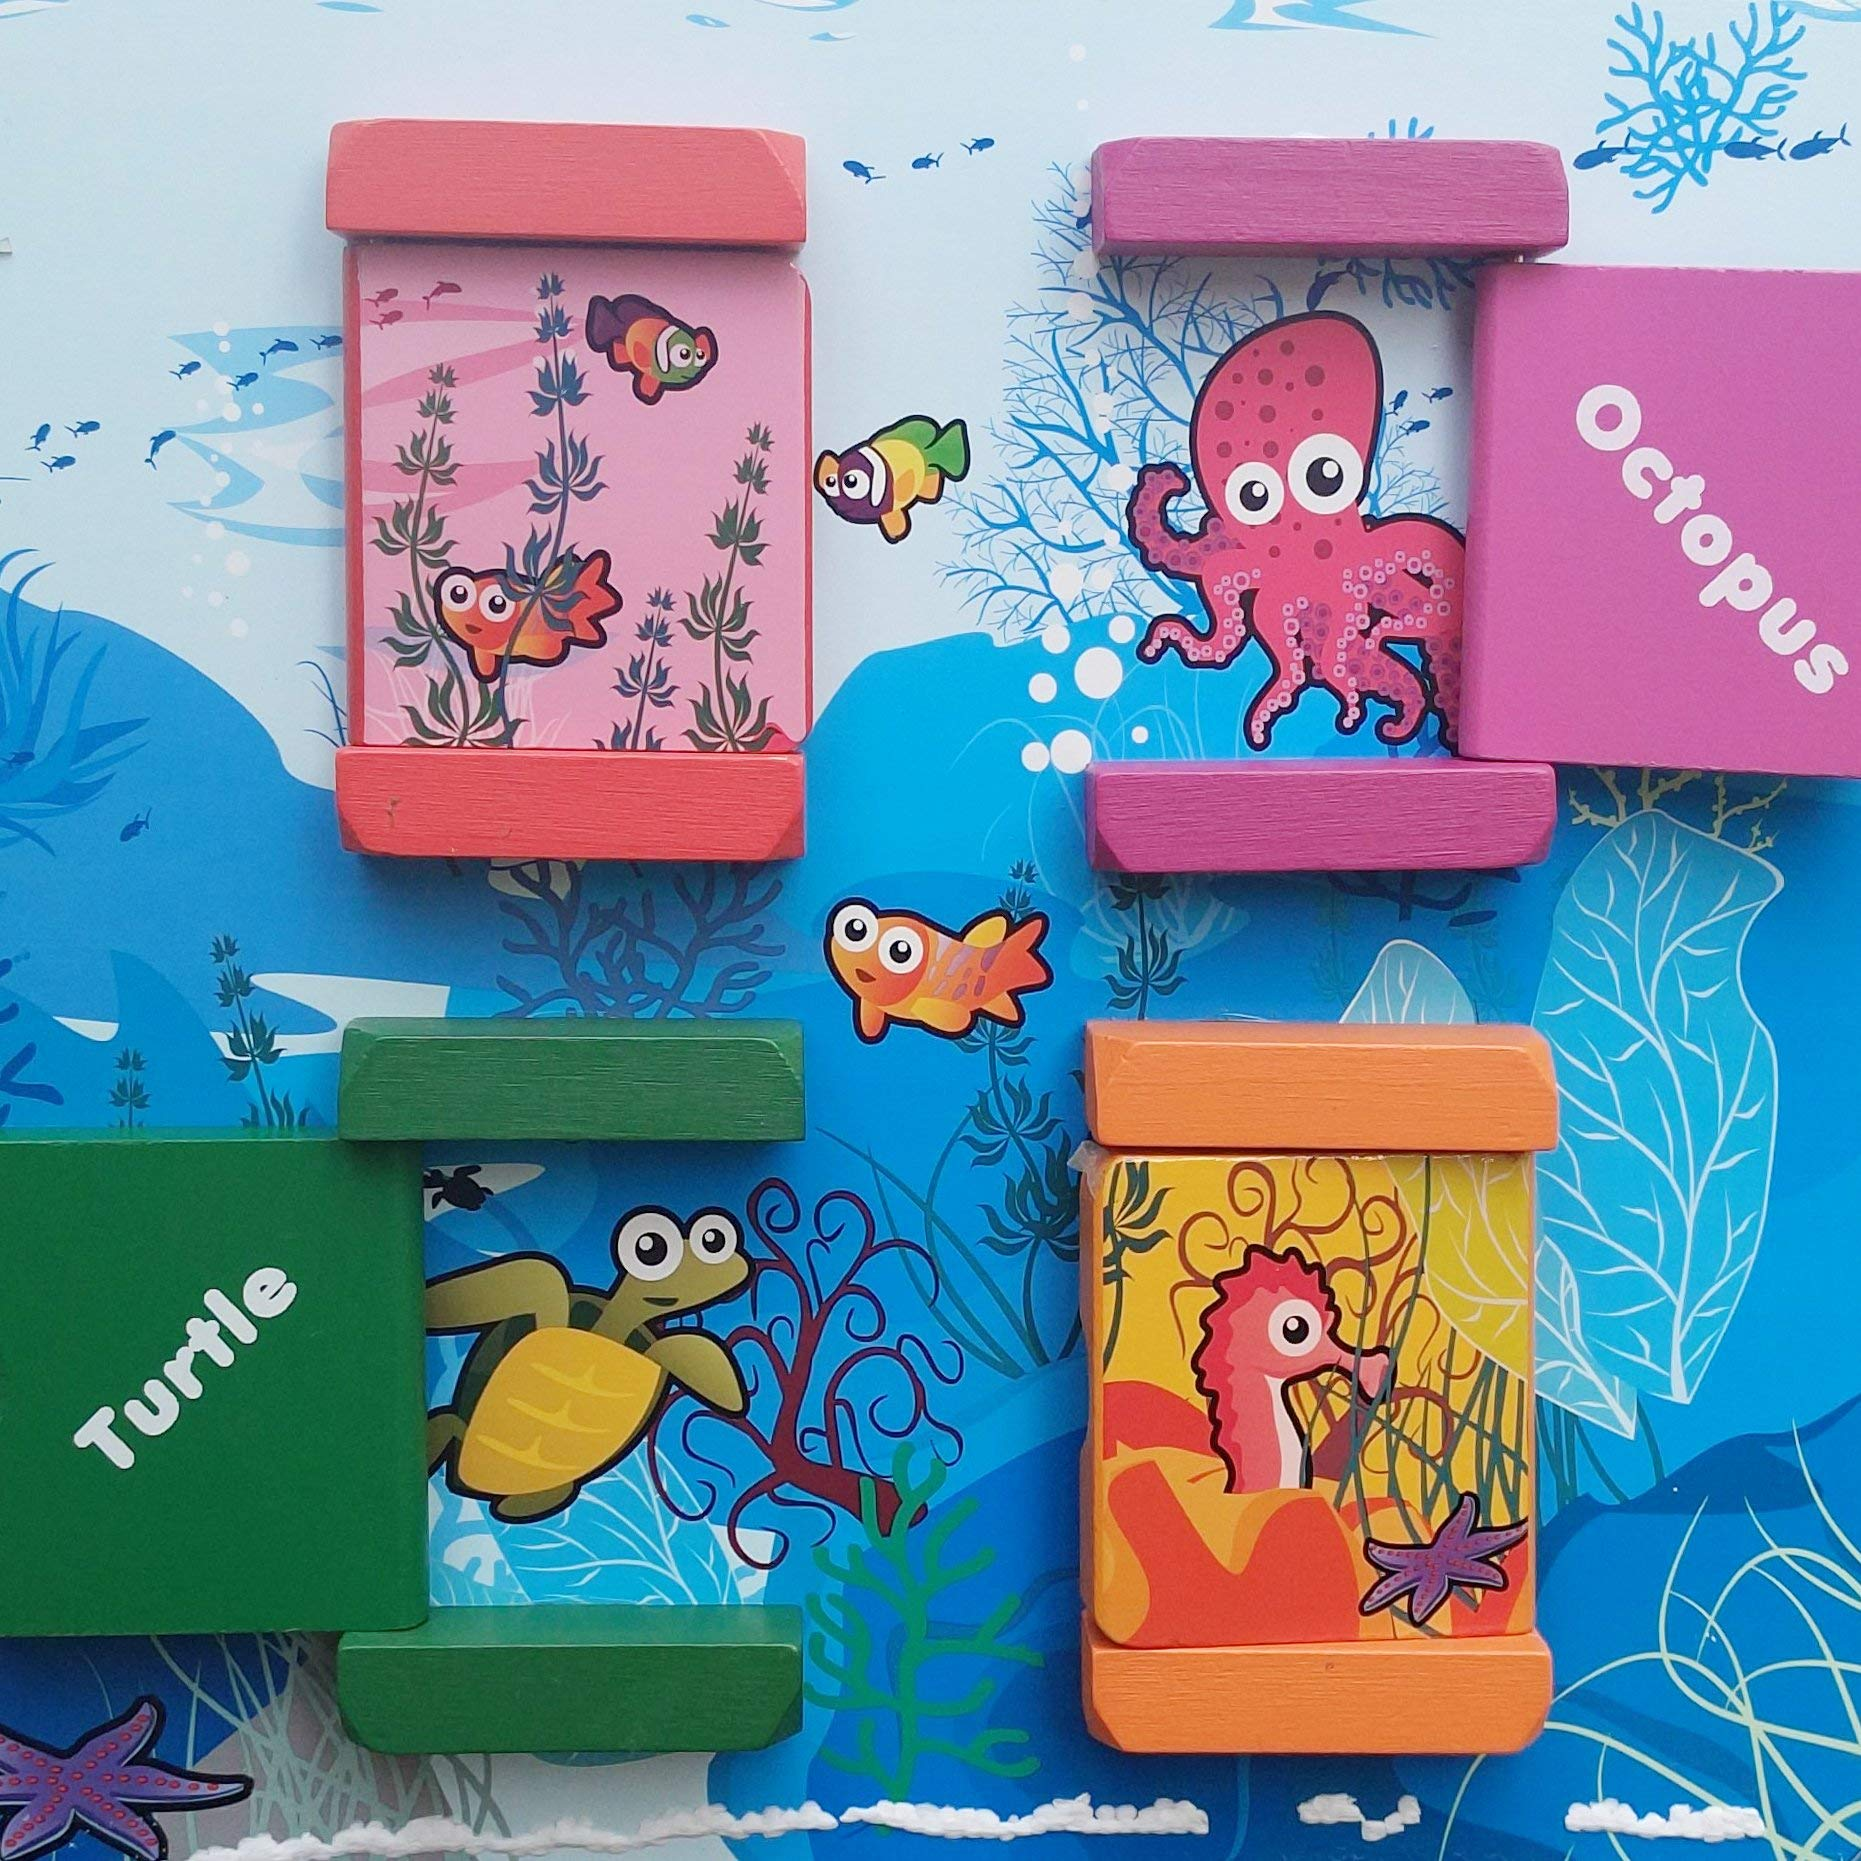 Under The Sea Adventures, Deluxe Activity Wooden Maze Cube - Perfect for Kids Play, Musical Activity, and Toddlers Early Developmental Skills by Pidoko Kids (Image #7)